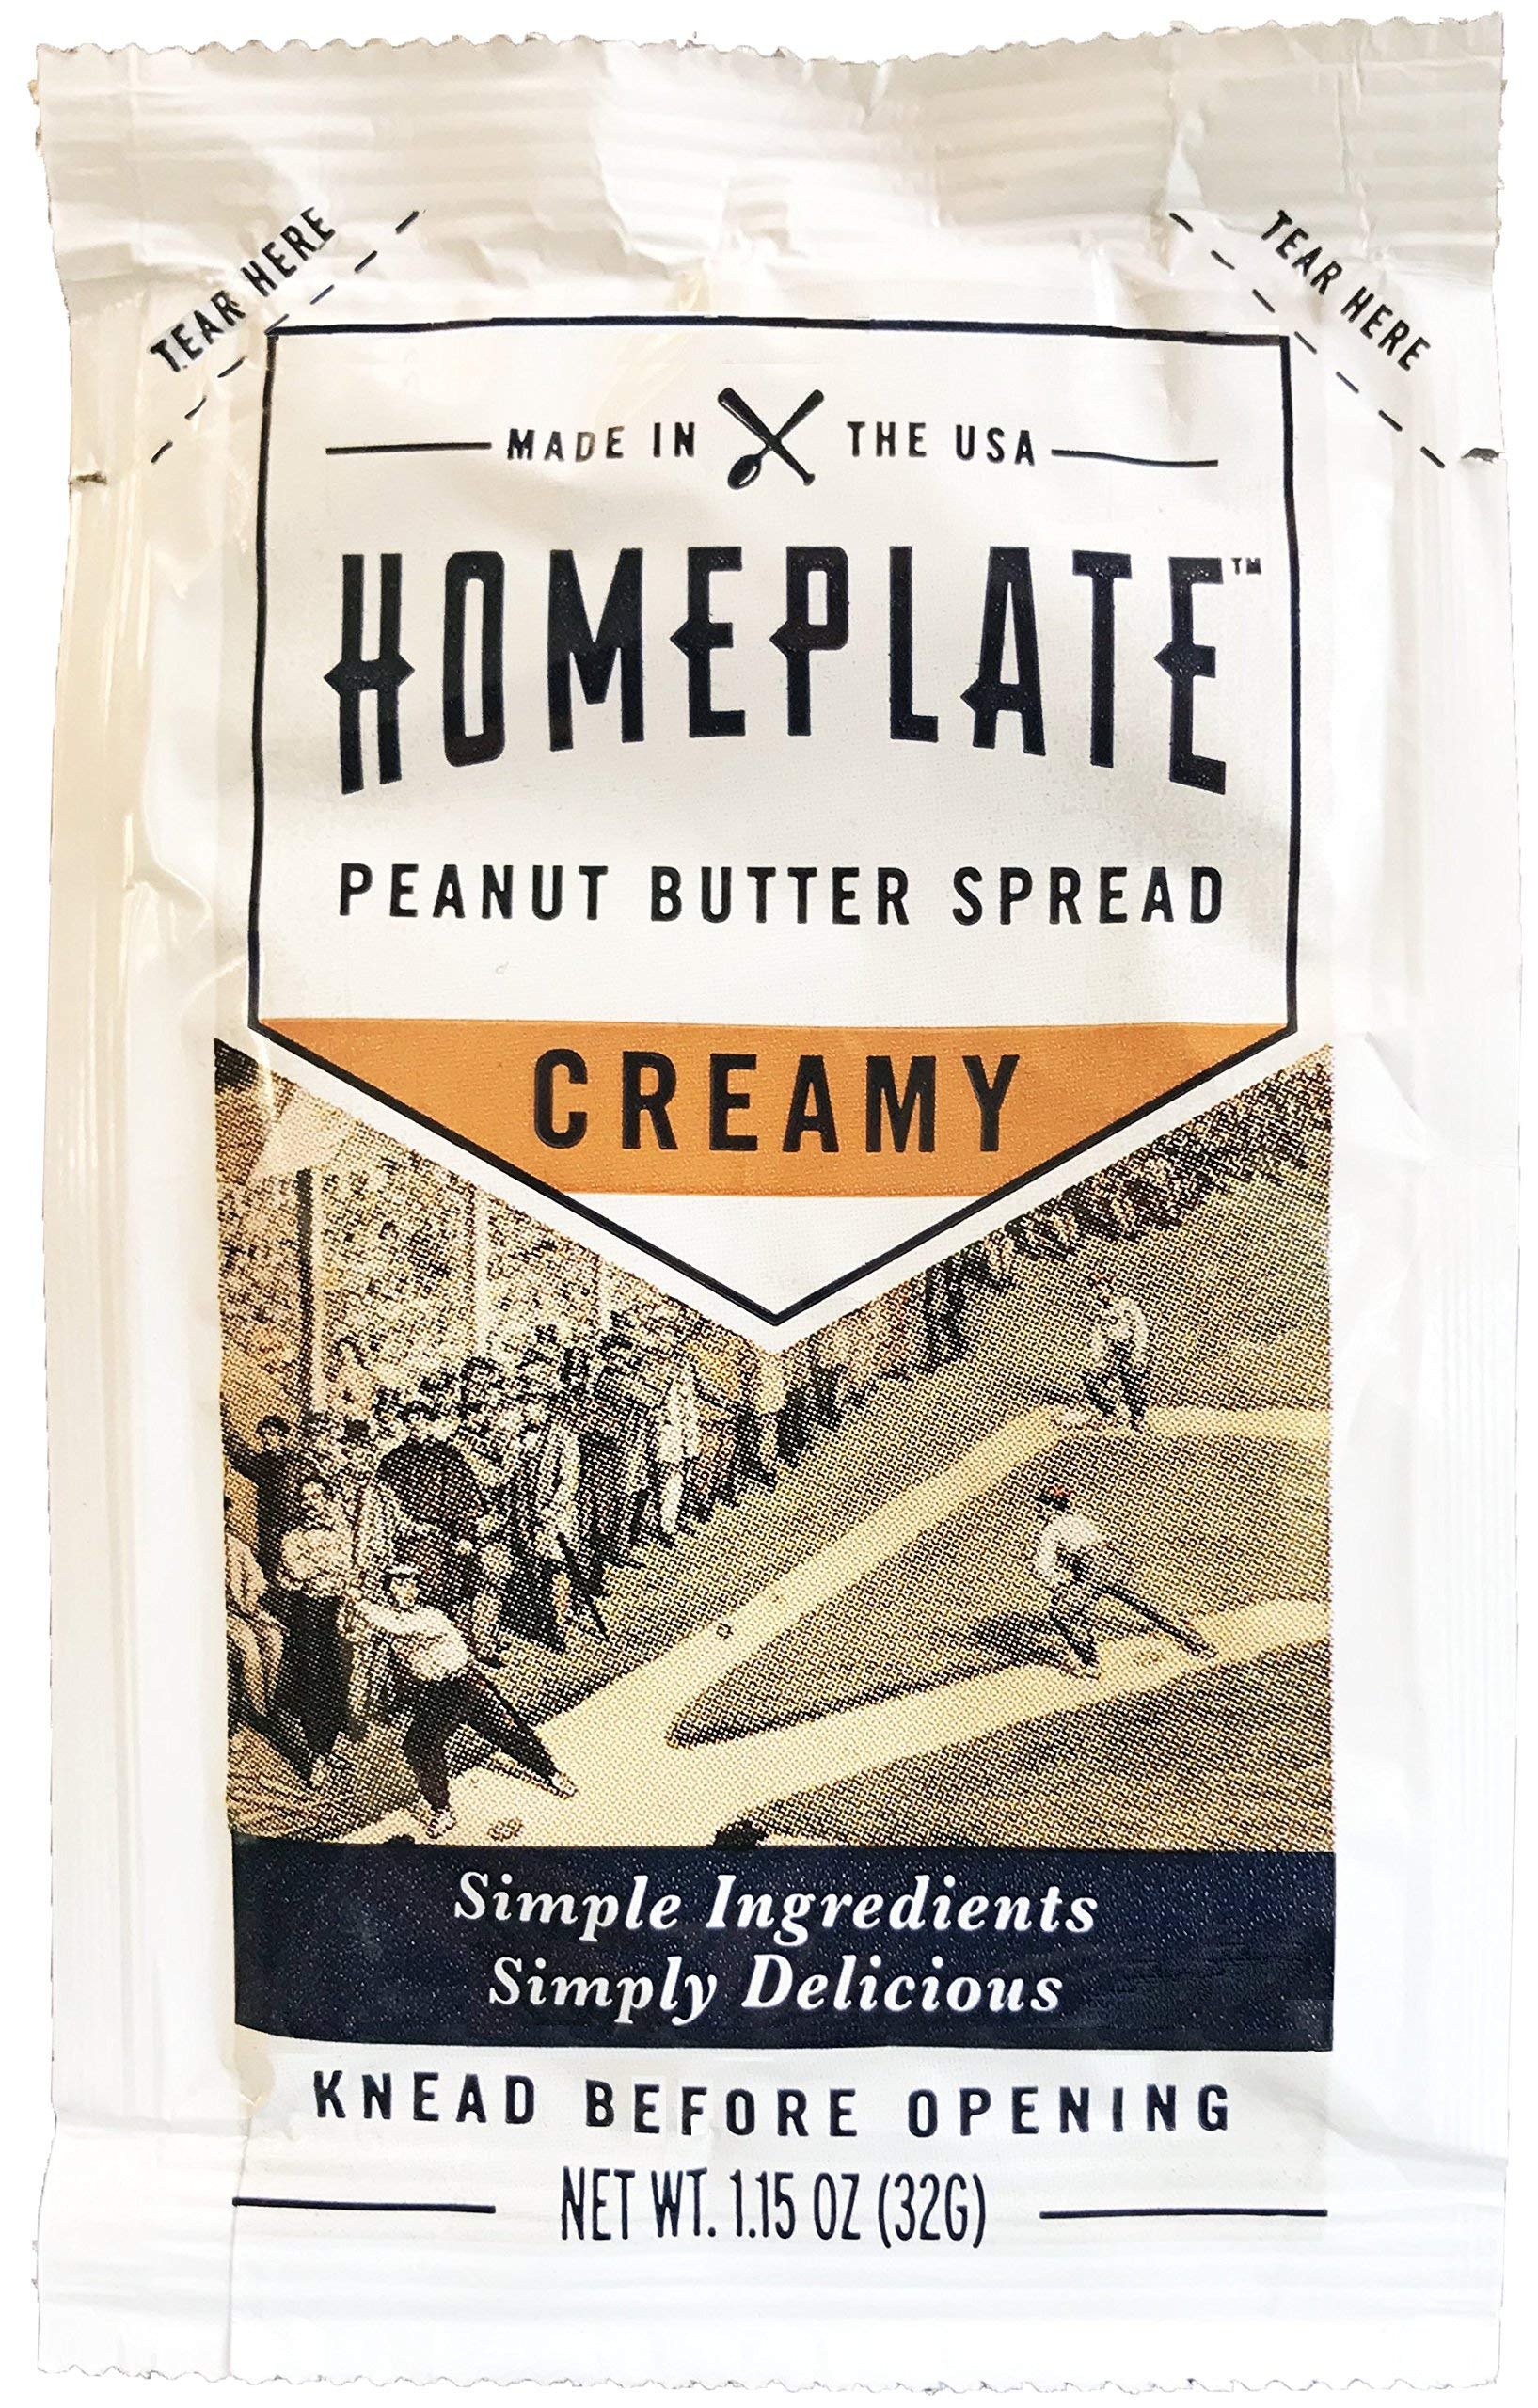 HomePlate Peanut Butter On-the-Go Squeeze Pack, Creamy, All Natural, No Stir, Non-GMO, 1.15 oz. squeeze pack, 1 Unit